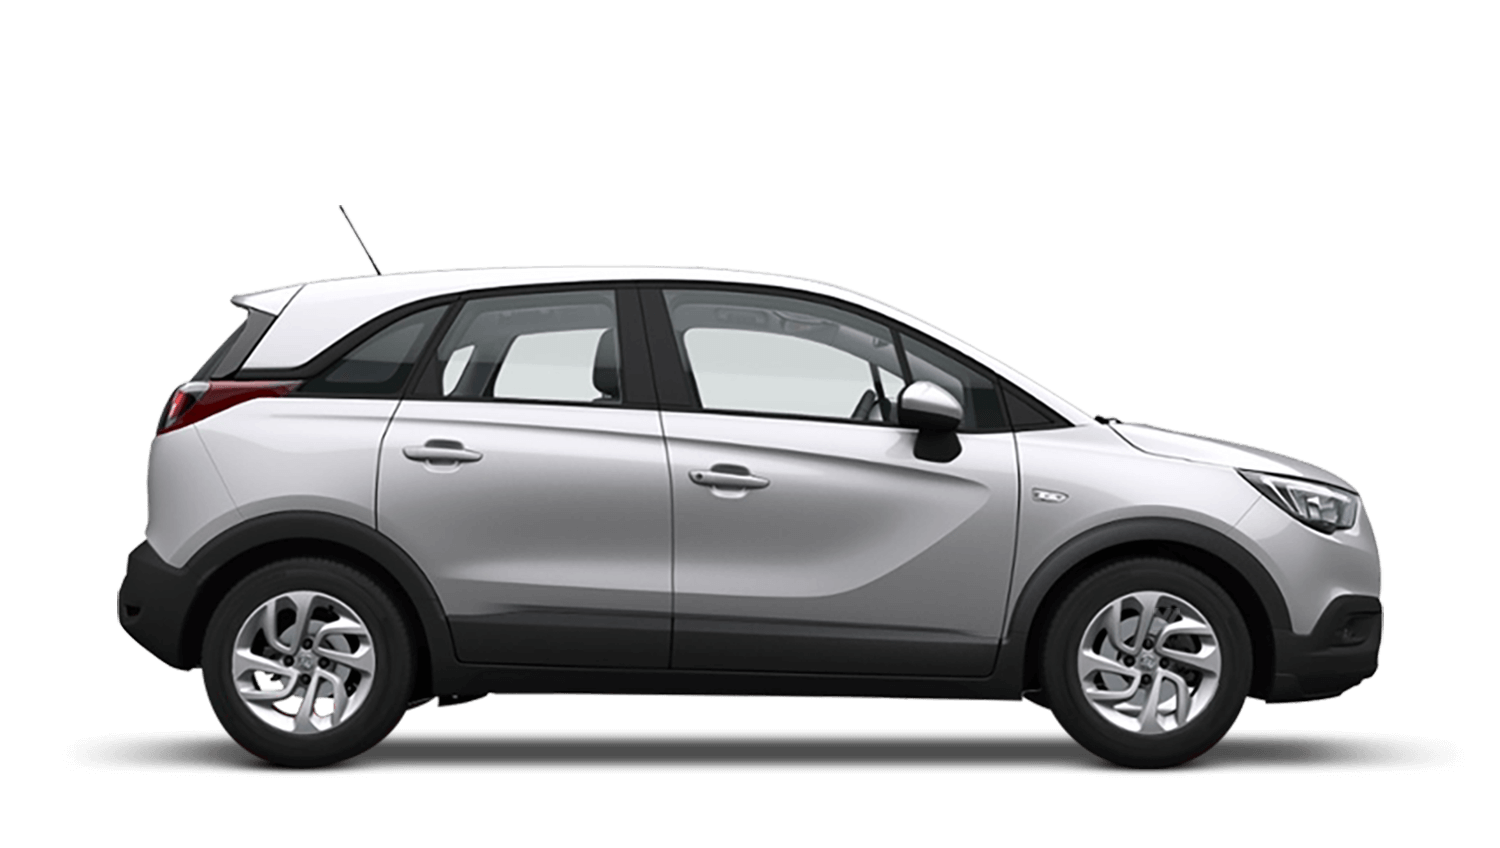 Sovereign Silver (Metallic) Vauxhall Crossland X